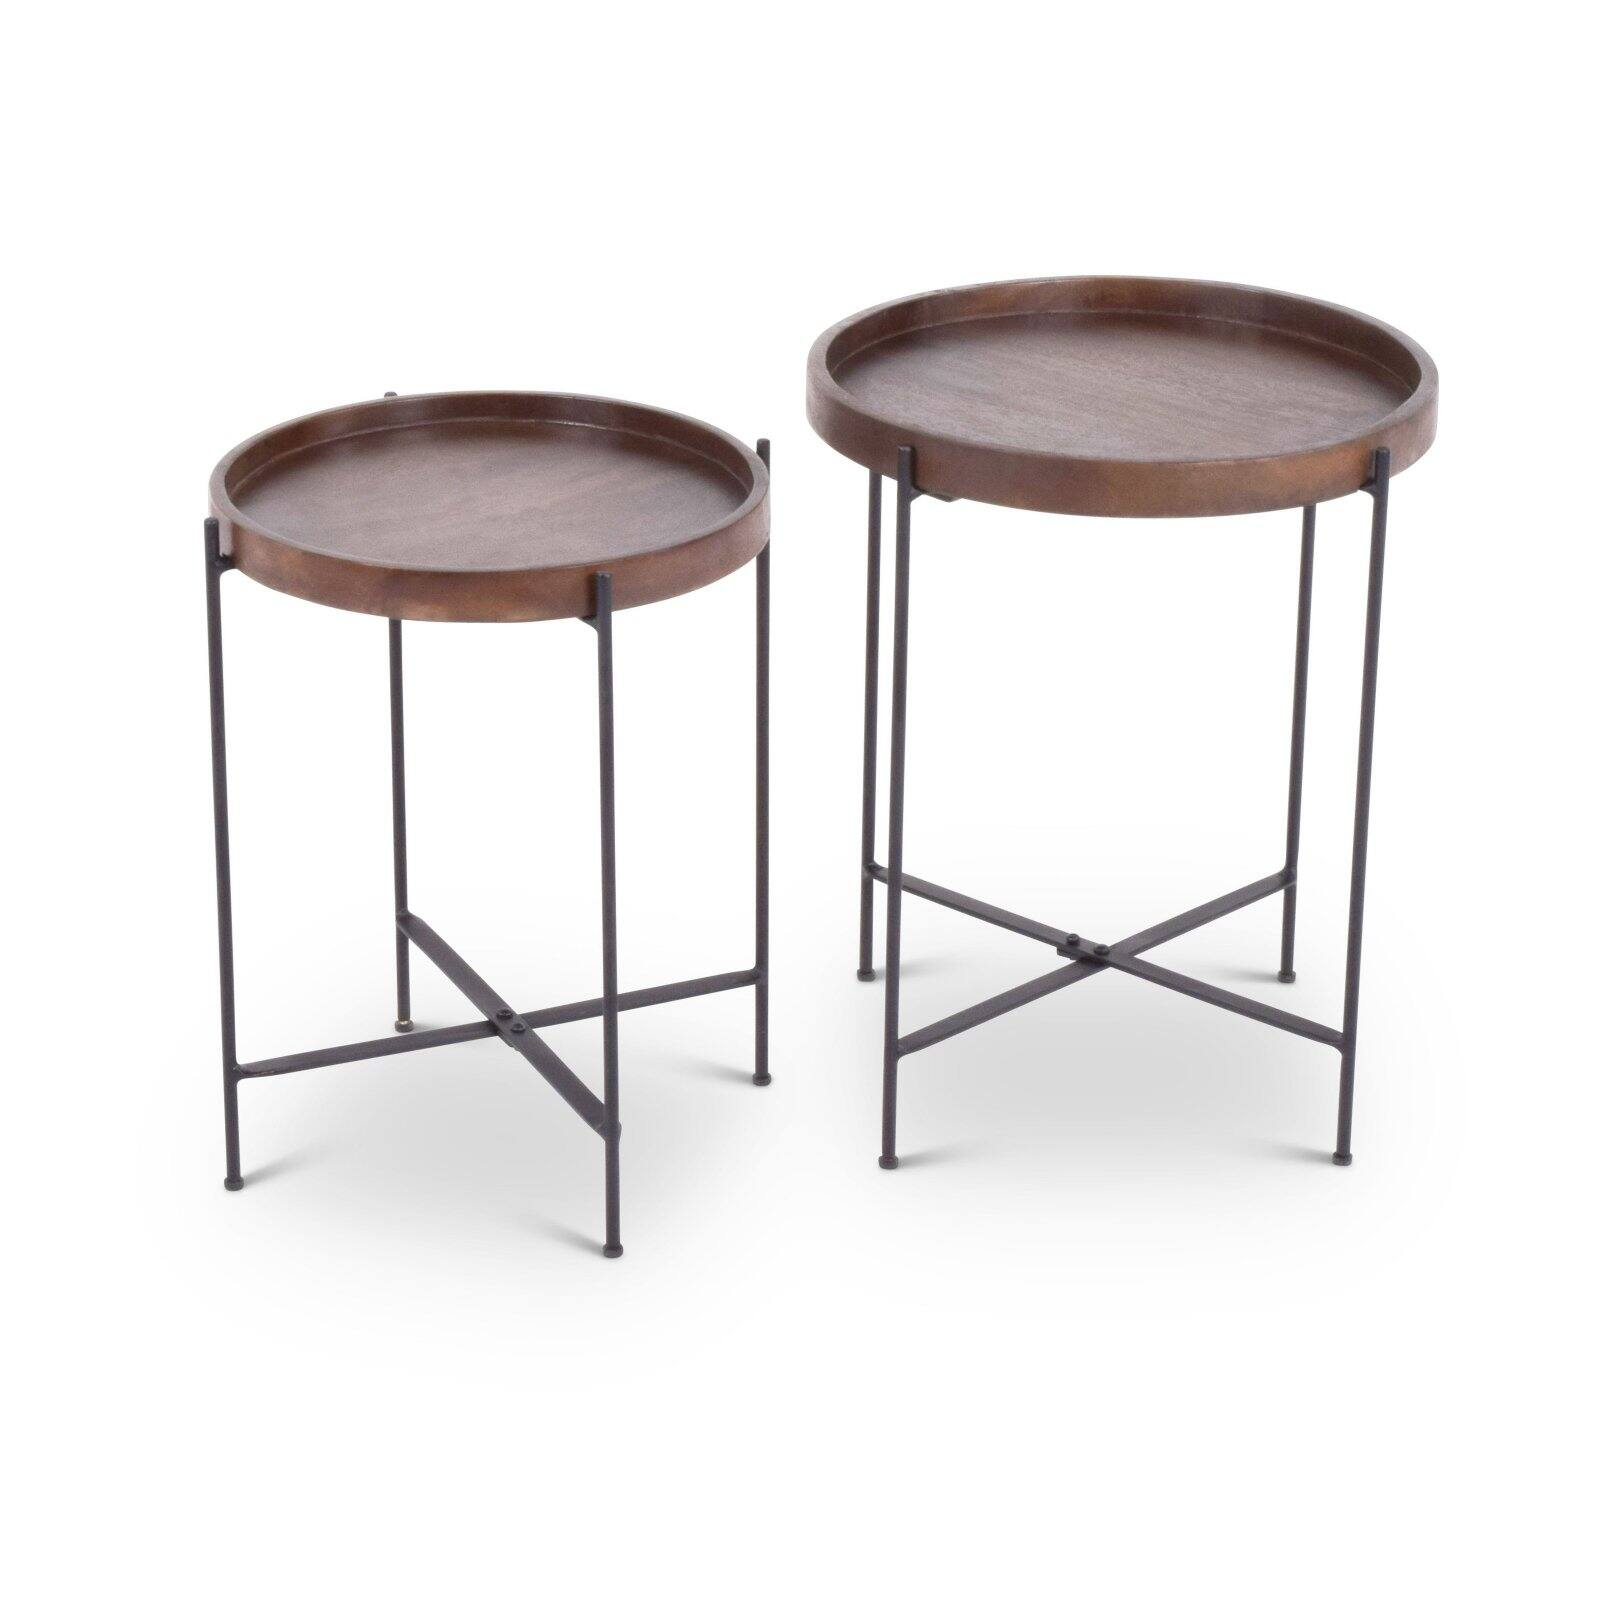 Steve Silver Co Capri Round Accent Tables Set Of 2 Walmart Com Walmart Com